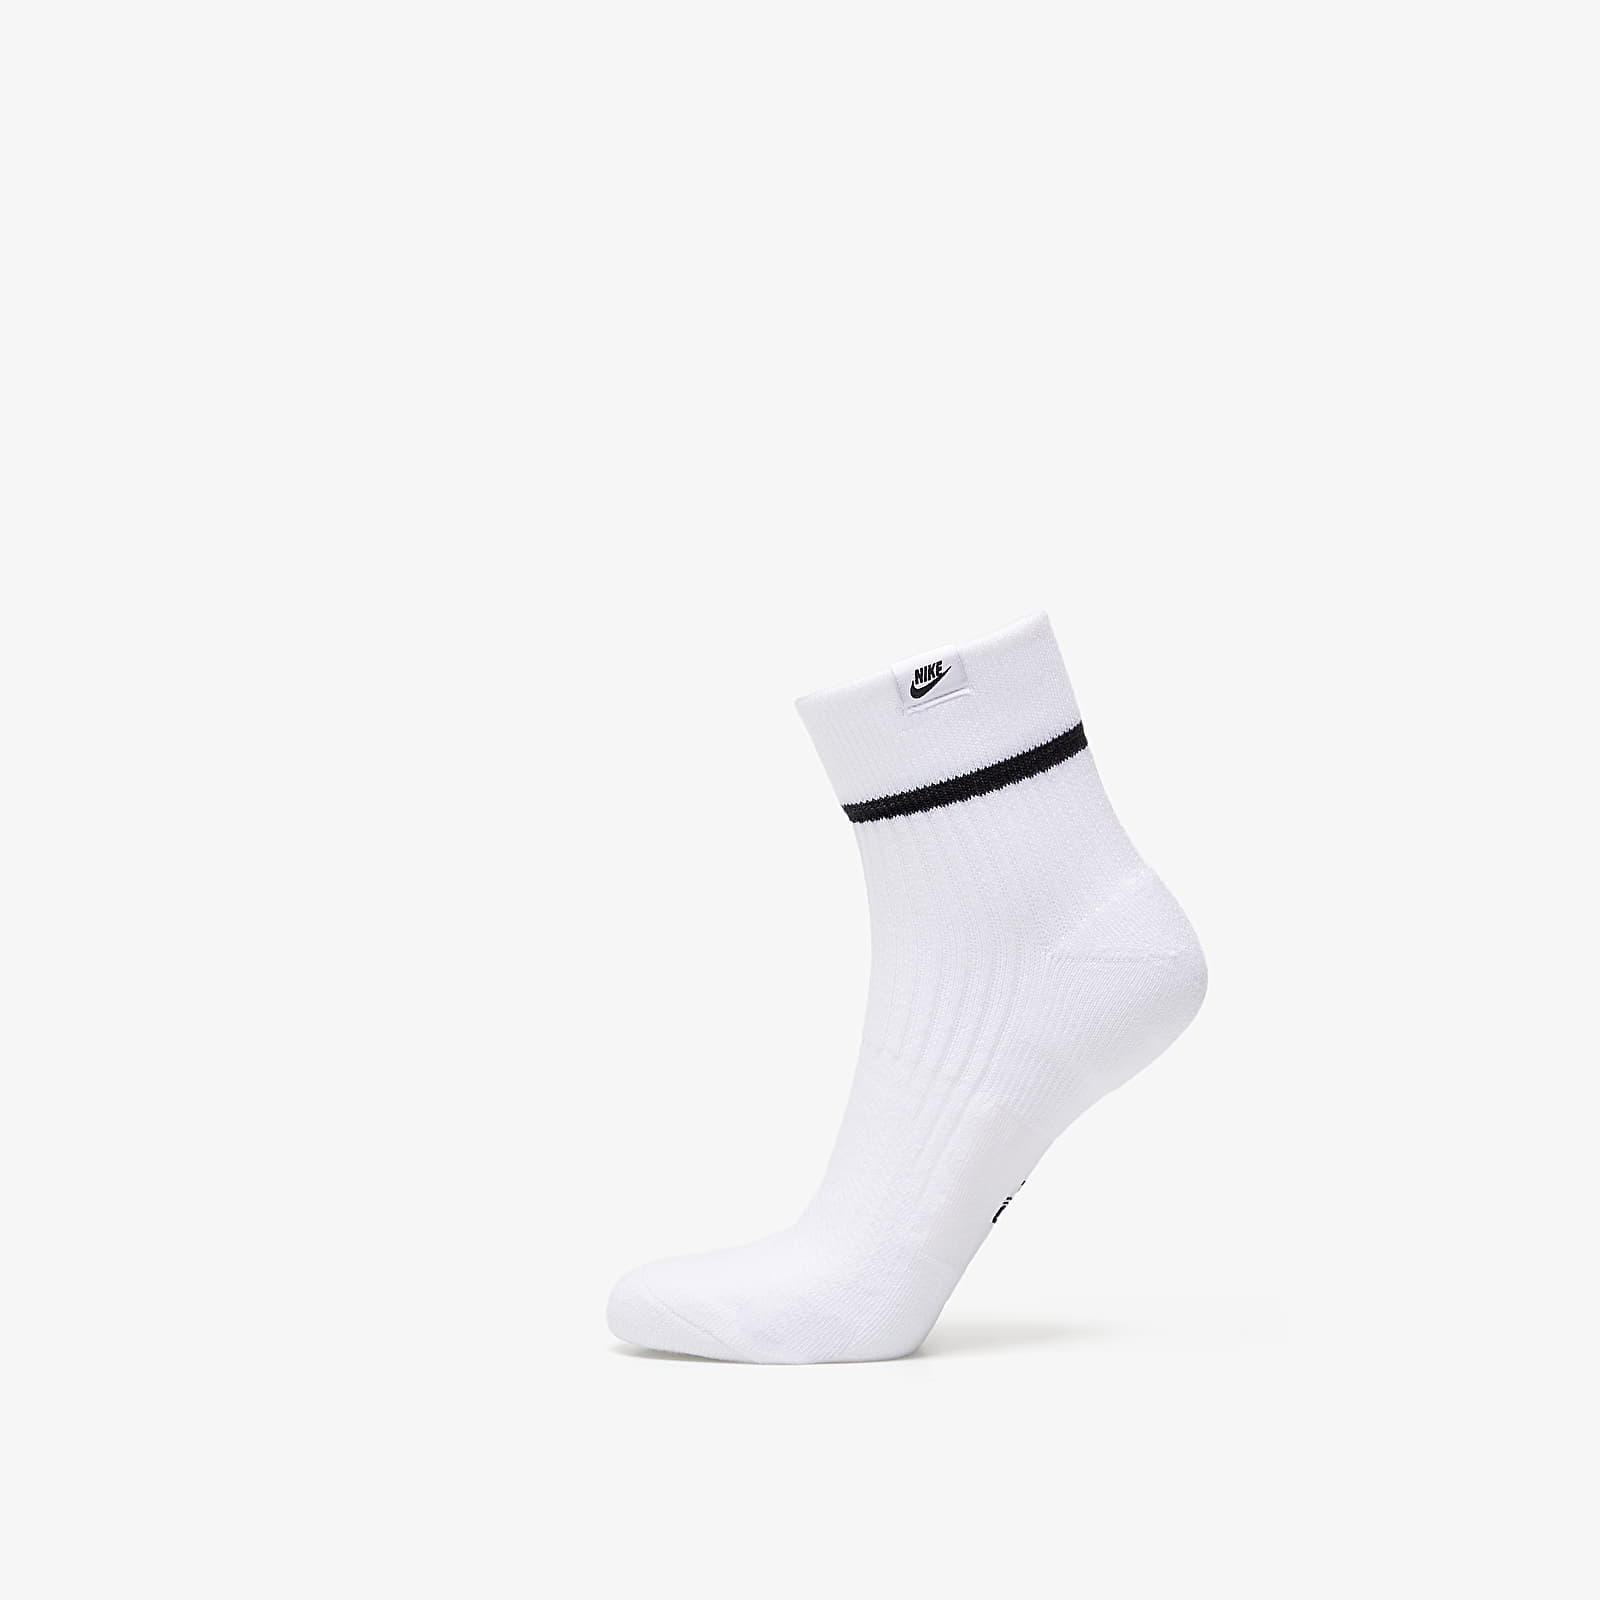 Zoknik Nike Sneaker Essential Ankle Sox 2 Pair White/ Black/ Black